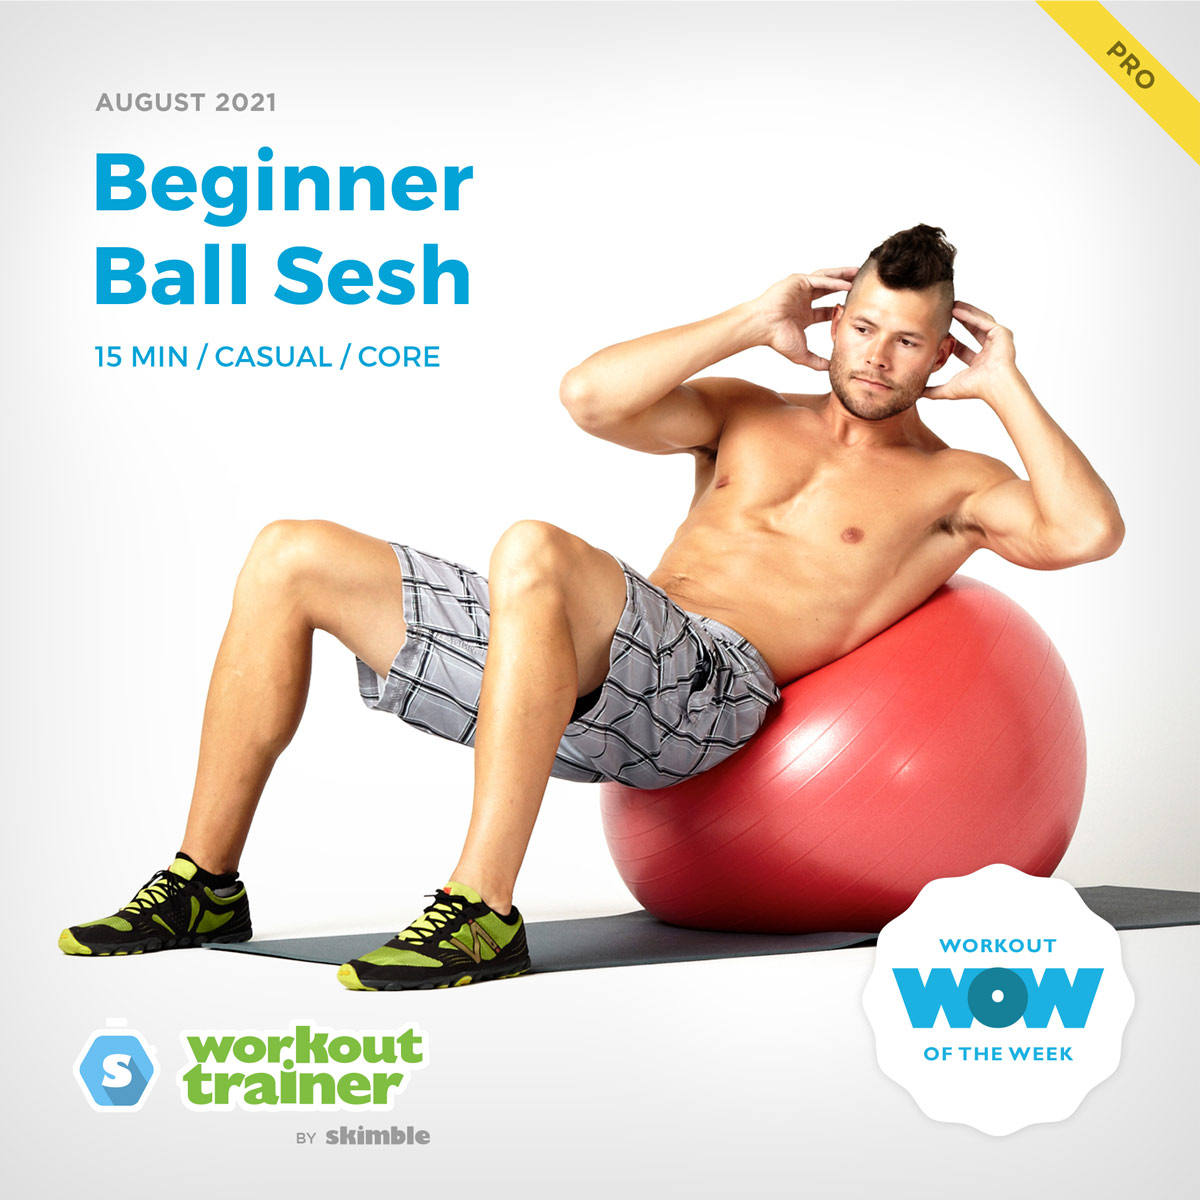 Male Personal Trainer doing Oblique Ball Crunches on a Stability Ball